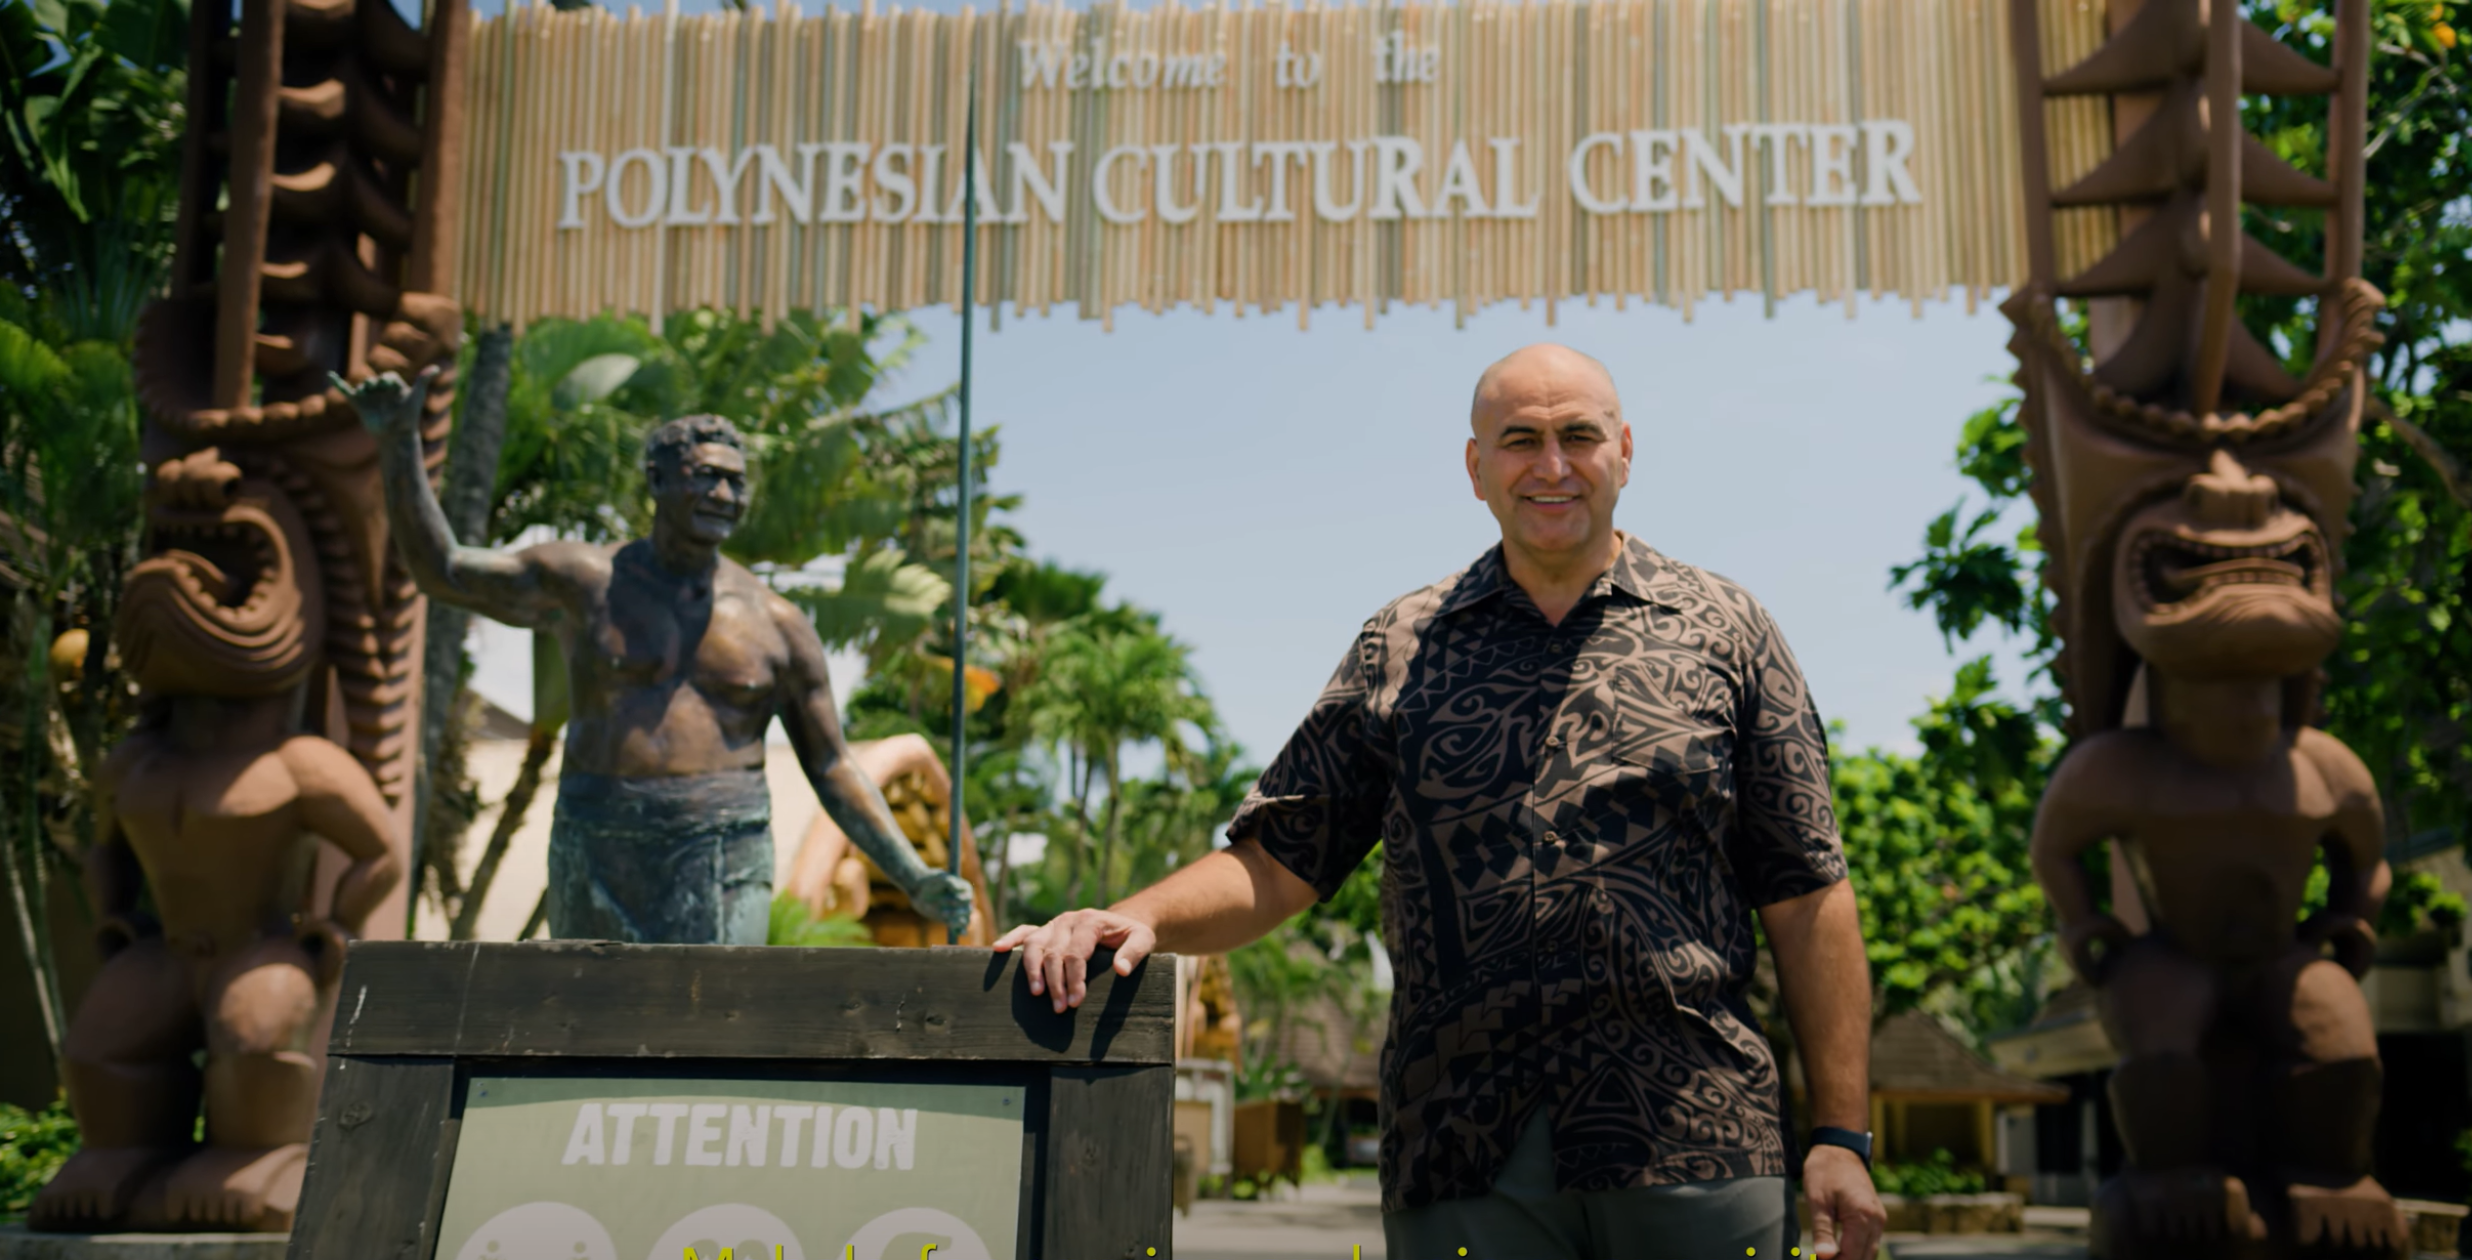 P. Alfred Grace, President of the Polynesian Cultural Center greets visitors in a Covid-19 specific Health & Safety video. The Center plans to fully reopen in March, 2021